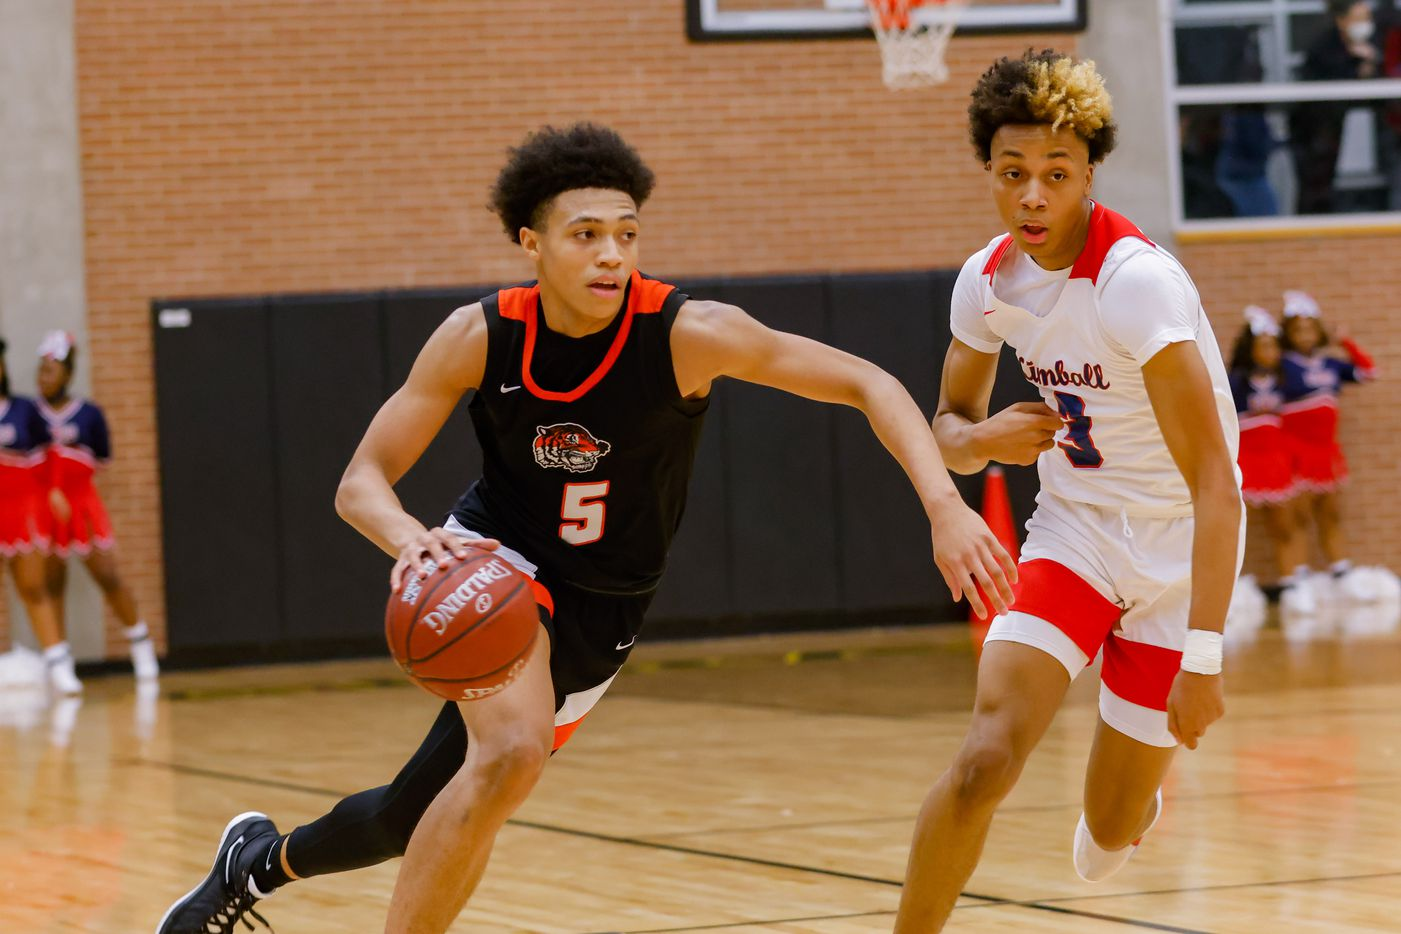 Lancaster's Elijah Hughey (5) drives past Kimball's Jayden Blair (0) during the first half of a boys basketball UIL Class 5A Region II playoff game in Forney on Friday, March 5, 2021. (Juan Figueroa/ The Dallas Morning News)